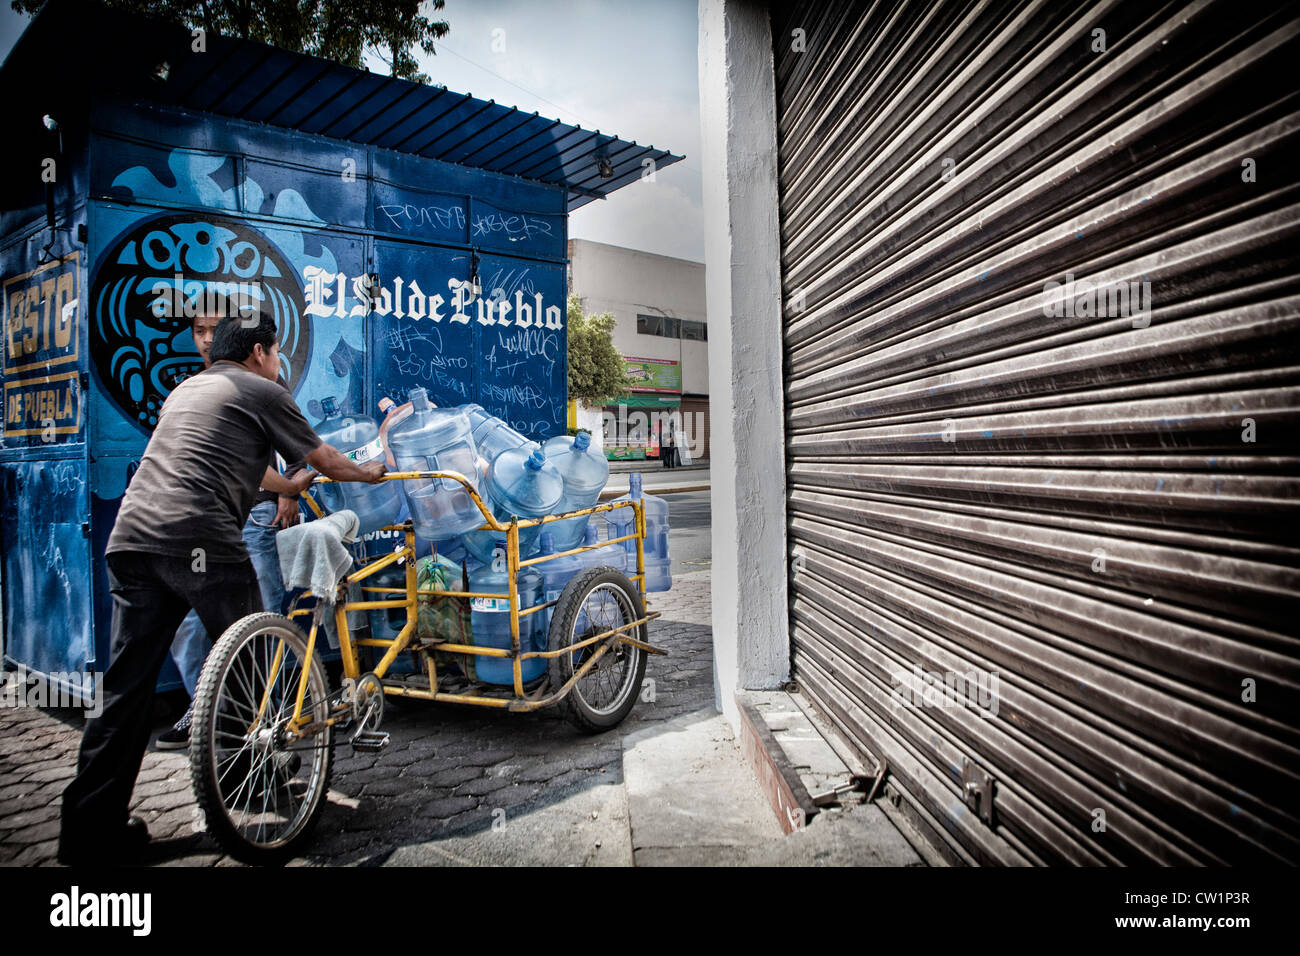 Man pushing cart of empty water bottles in Puebla, Mexico - Stock Image